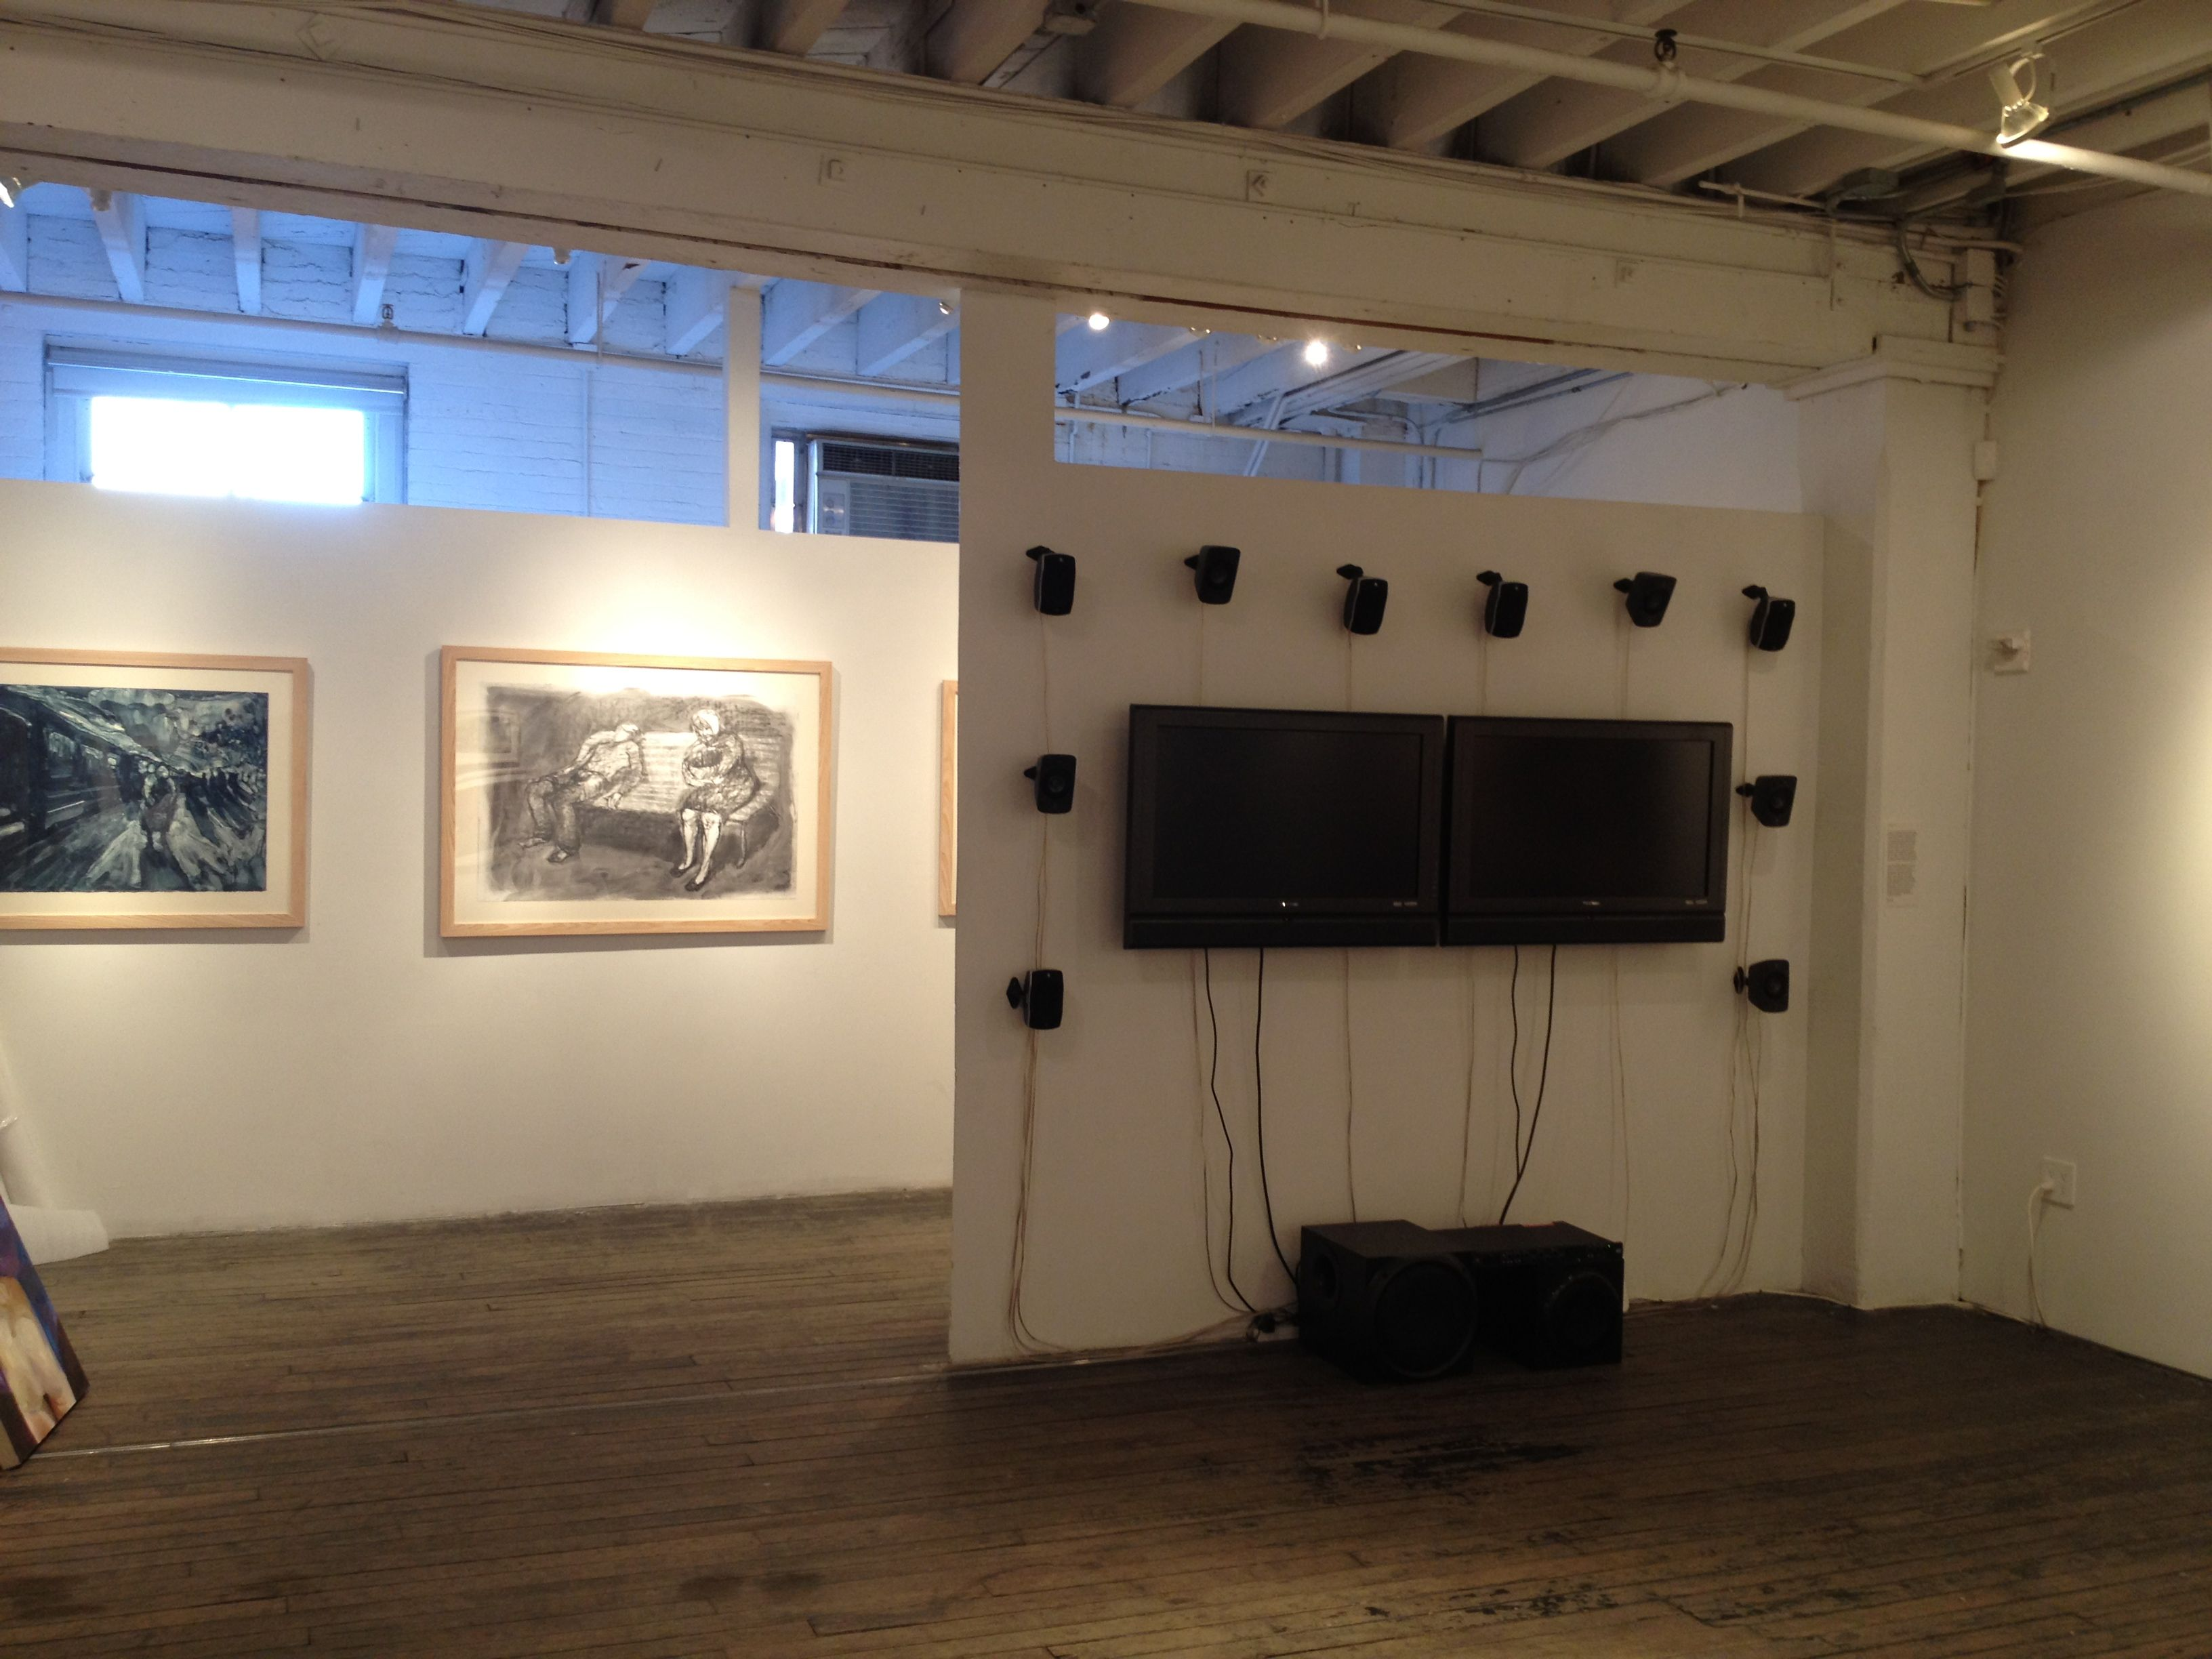 generative audio & video installation